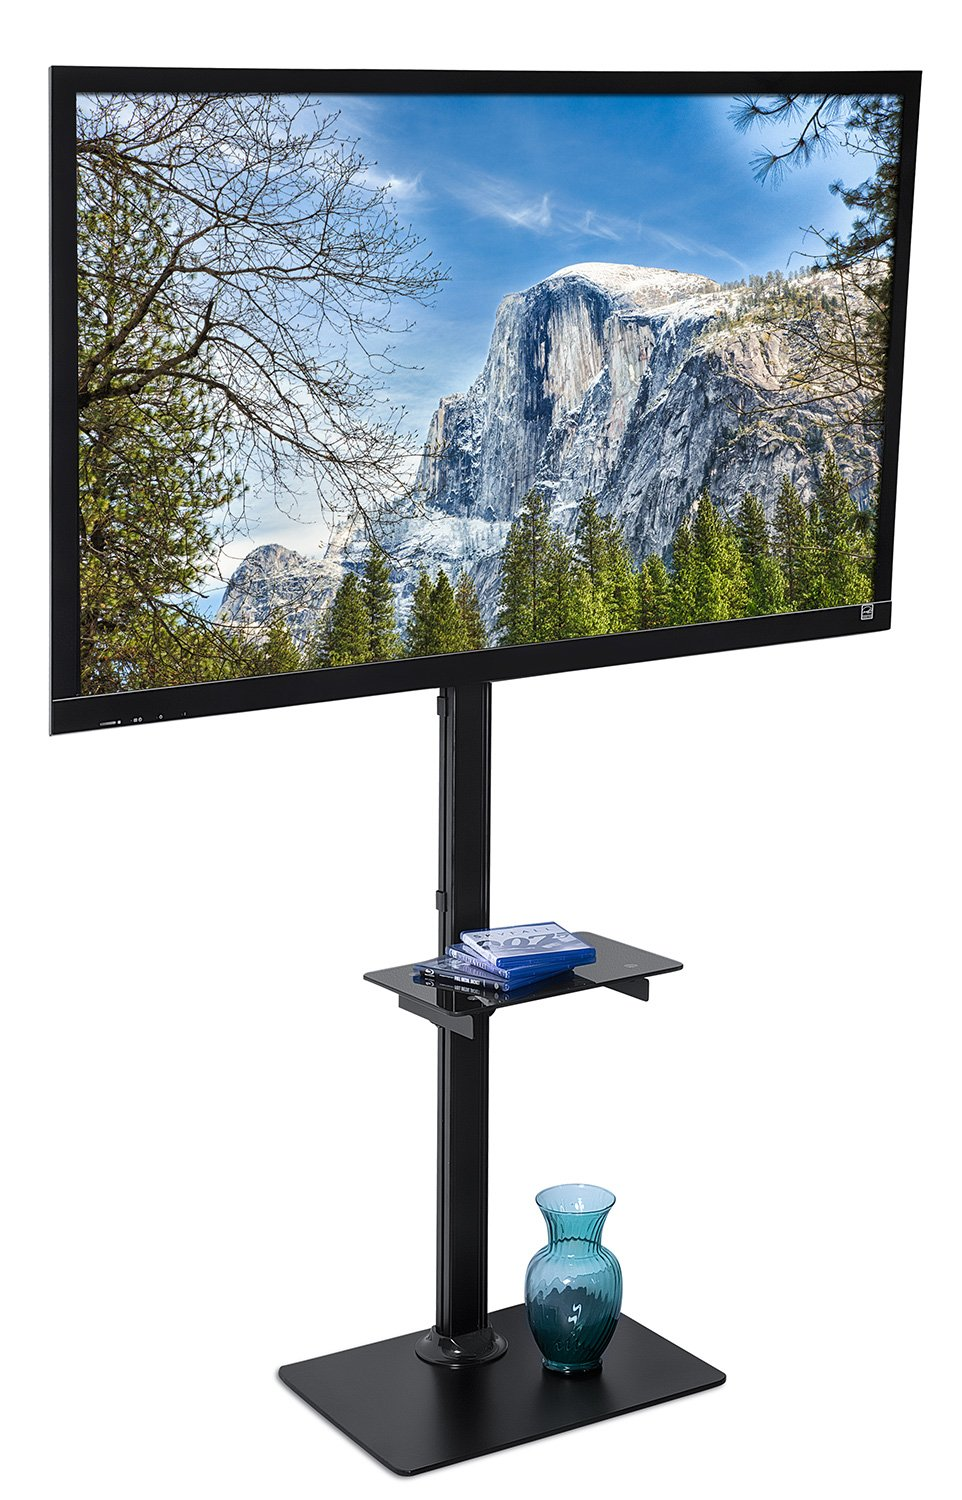 Mount-It! LED LCD Flat Panel Screen TV Floor Stand, TV Shelf and Stand fits 32 to 70 inch televisons up to 55 lbs, VESA mount compatible up to 400x400 (MI-877)